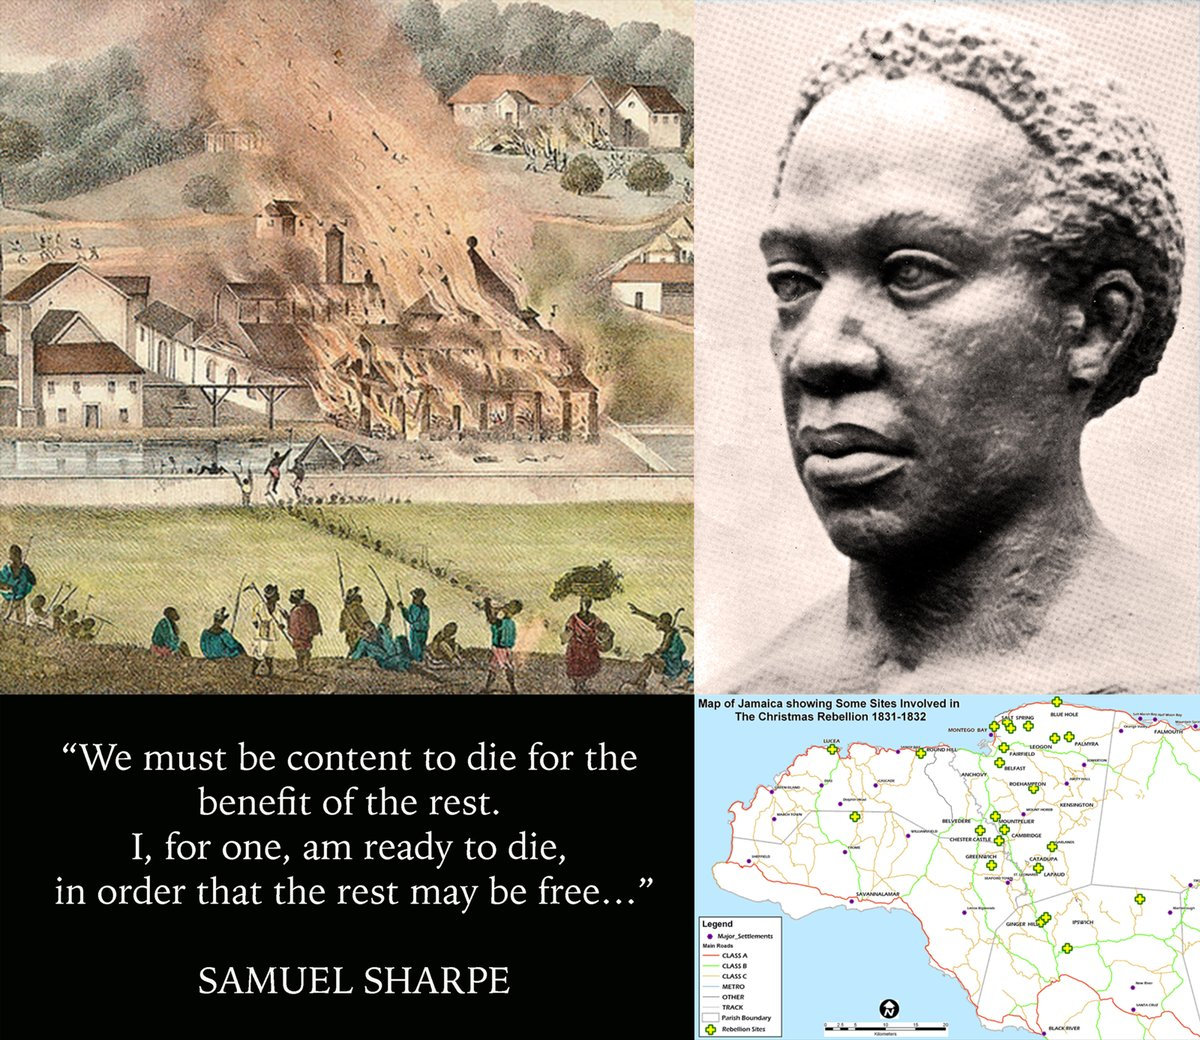 189 yrs ago on 27 Dec 1831 a Christmas Day strike by enslaved Africans organised by Samuel Sharpe escalated into a revolt that hastened slavery's end across the British Empire. In time, Sharpe will be recognised not only as a hero for Jamaicans, but as a hero for all of humanity.